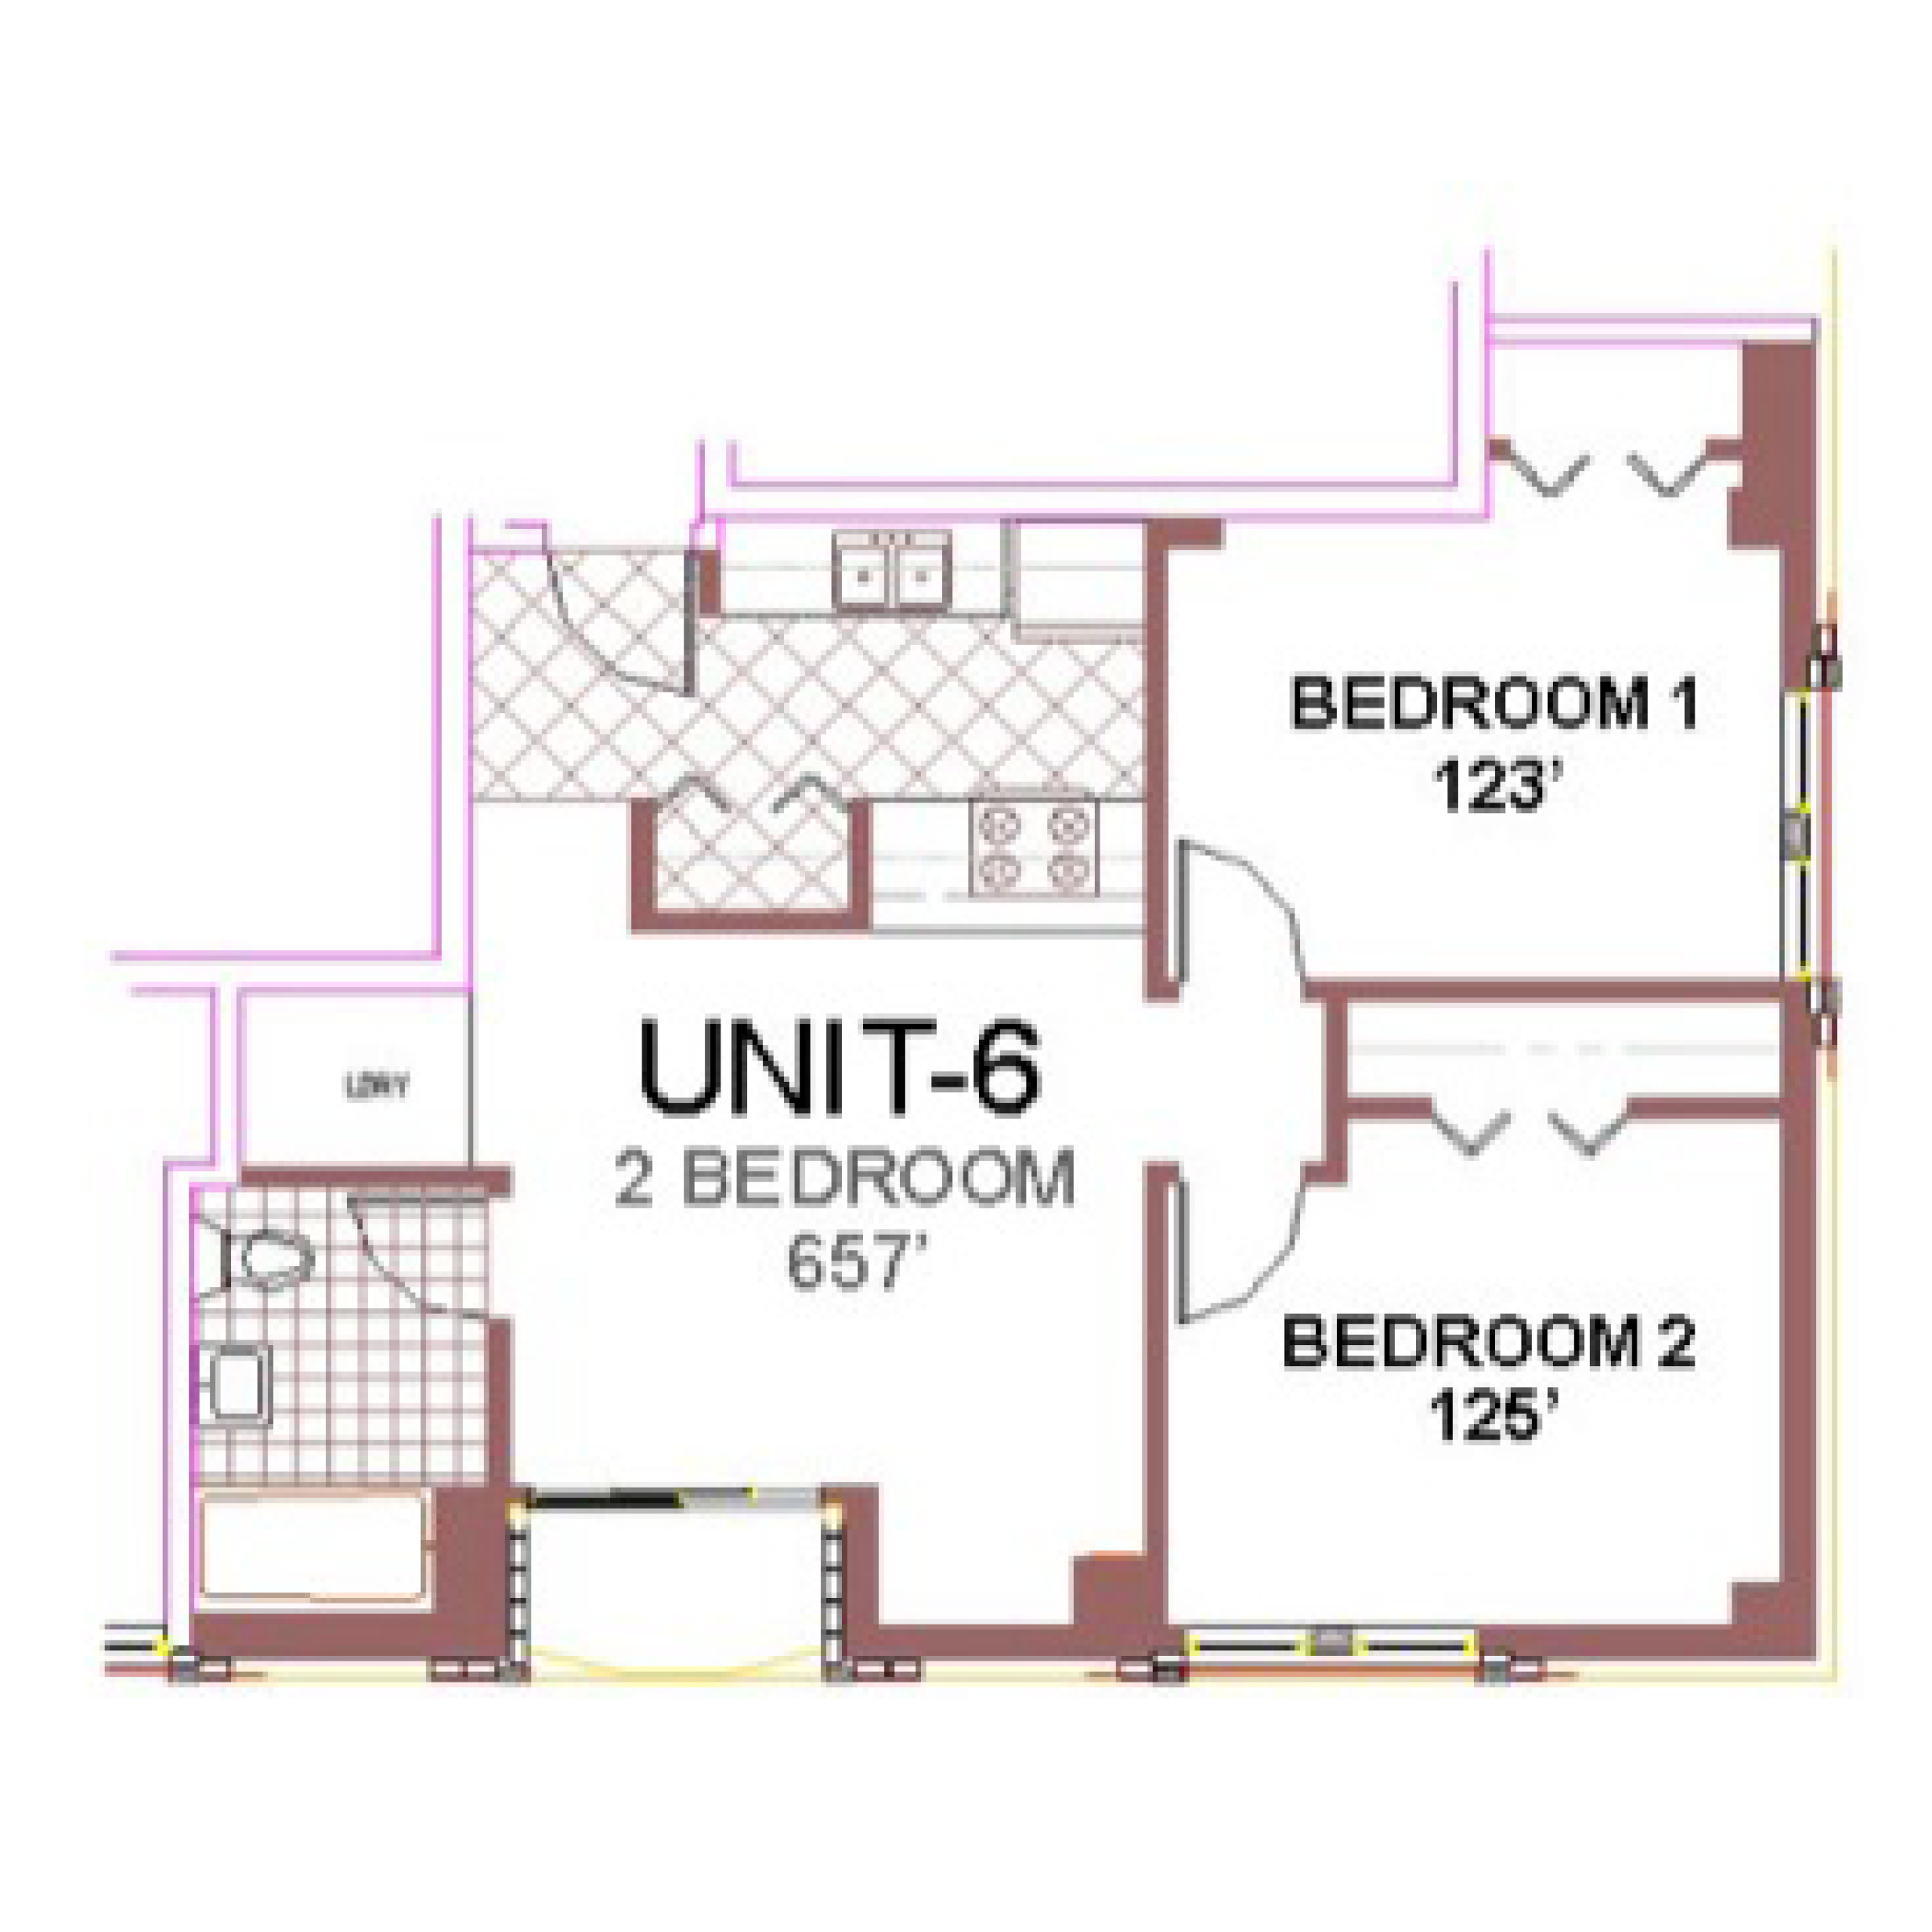 The Aberdeen Apartment Layout 6, 2 bedroom floor plan